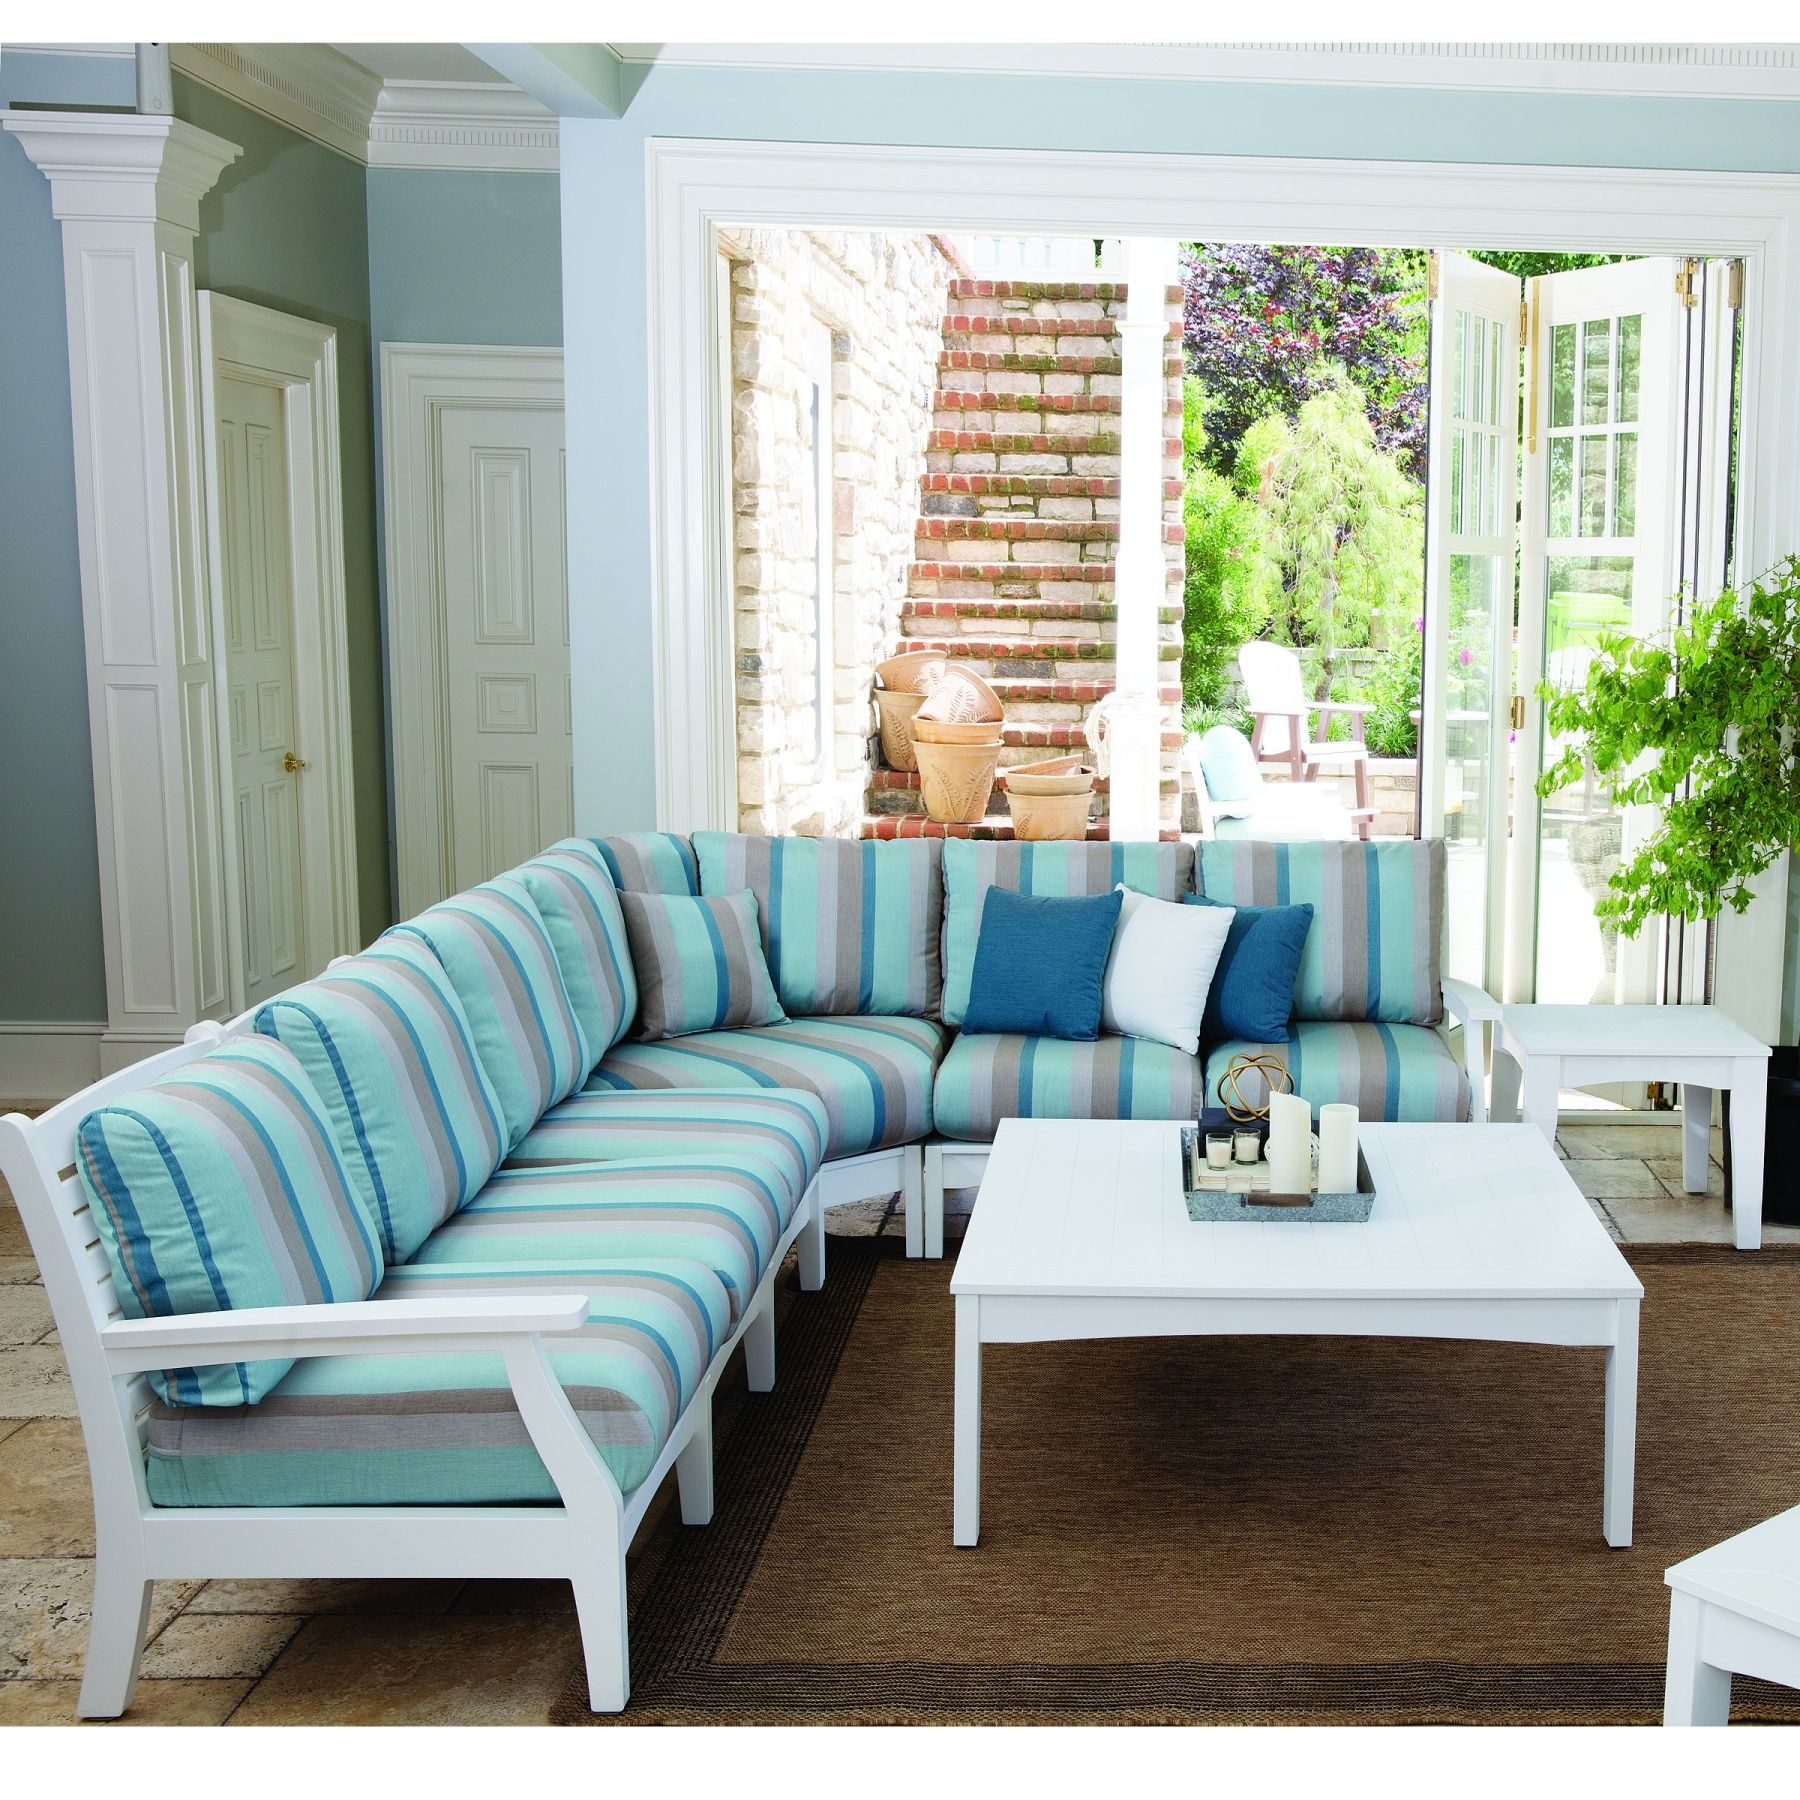 Berlin Gardens Classic Terrace Sectional Outdoor Living ... on Fine Living Patio Set id=16781